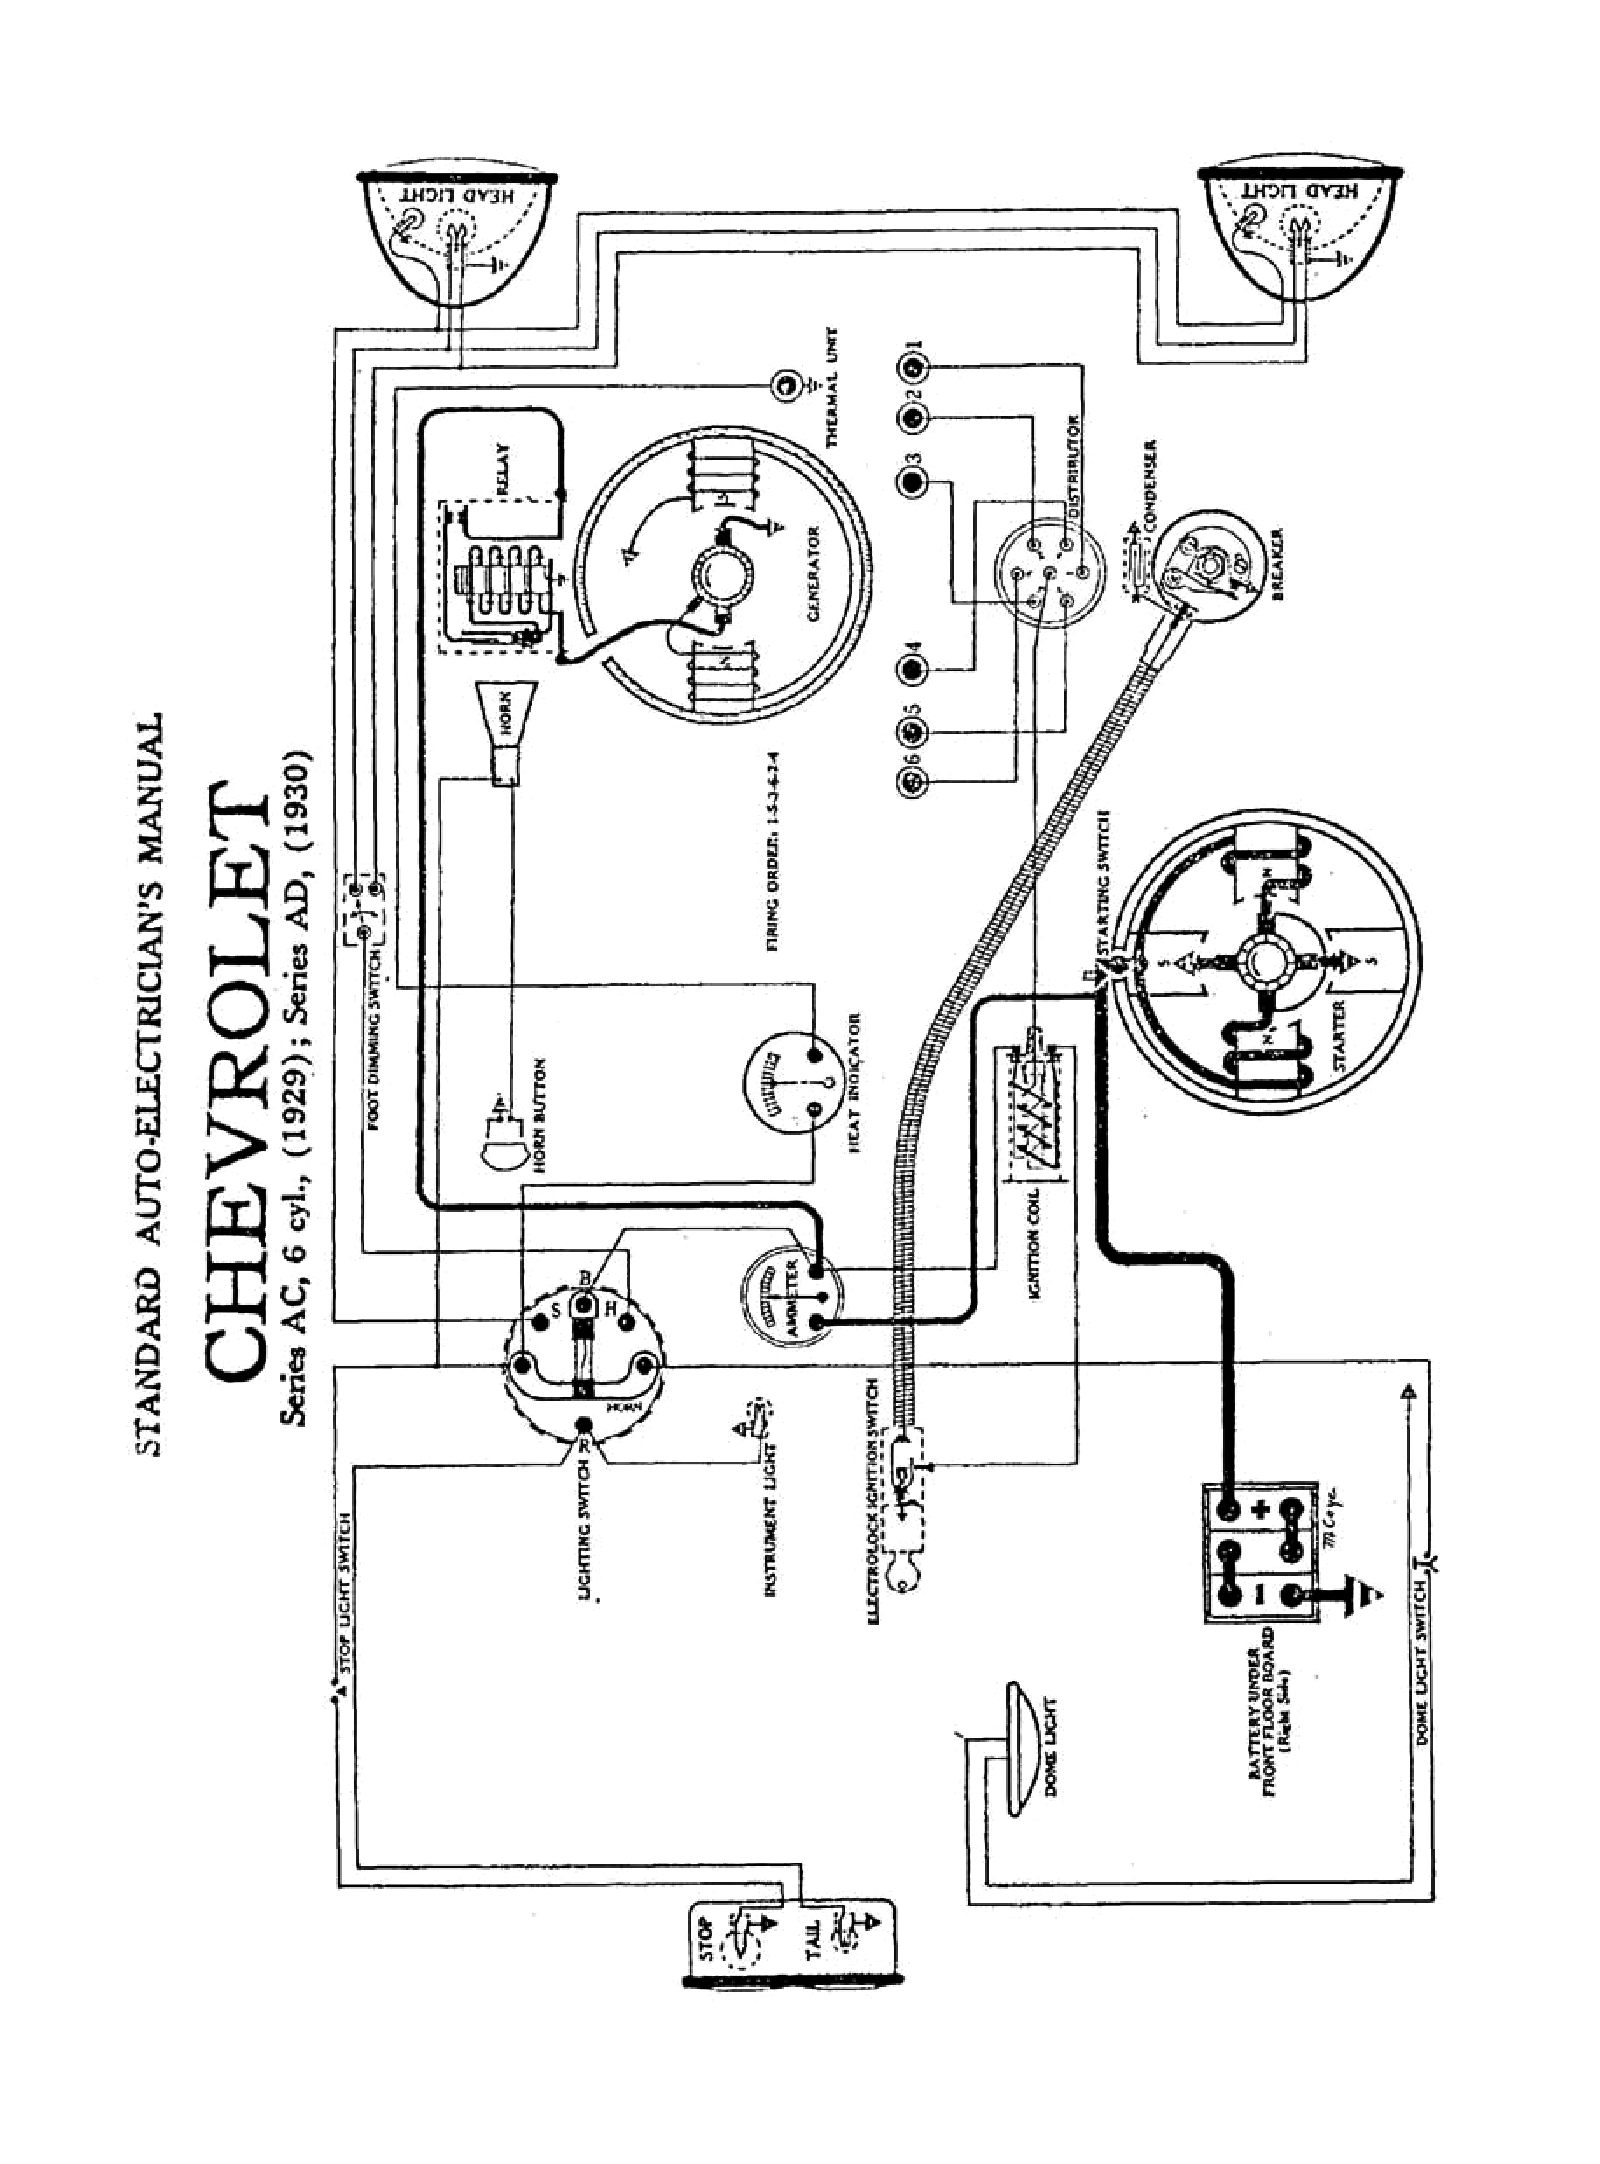 chevy wiring diagrams a wiring diagram for a polaris 1930 series ad model 1931, 1931 wiring diagrams